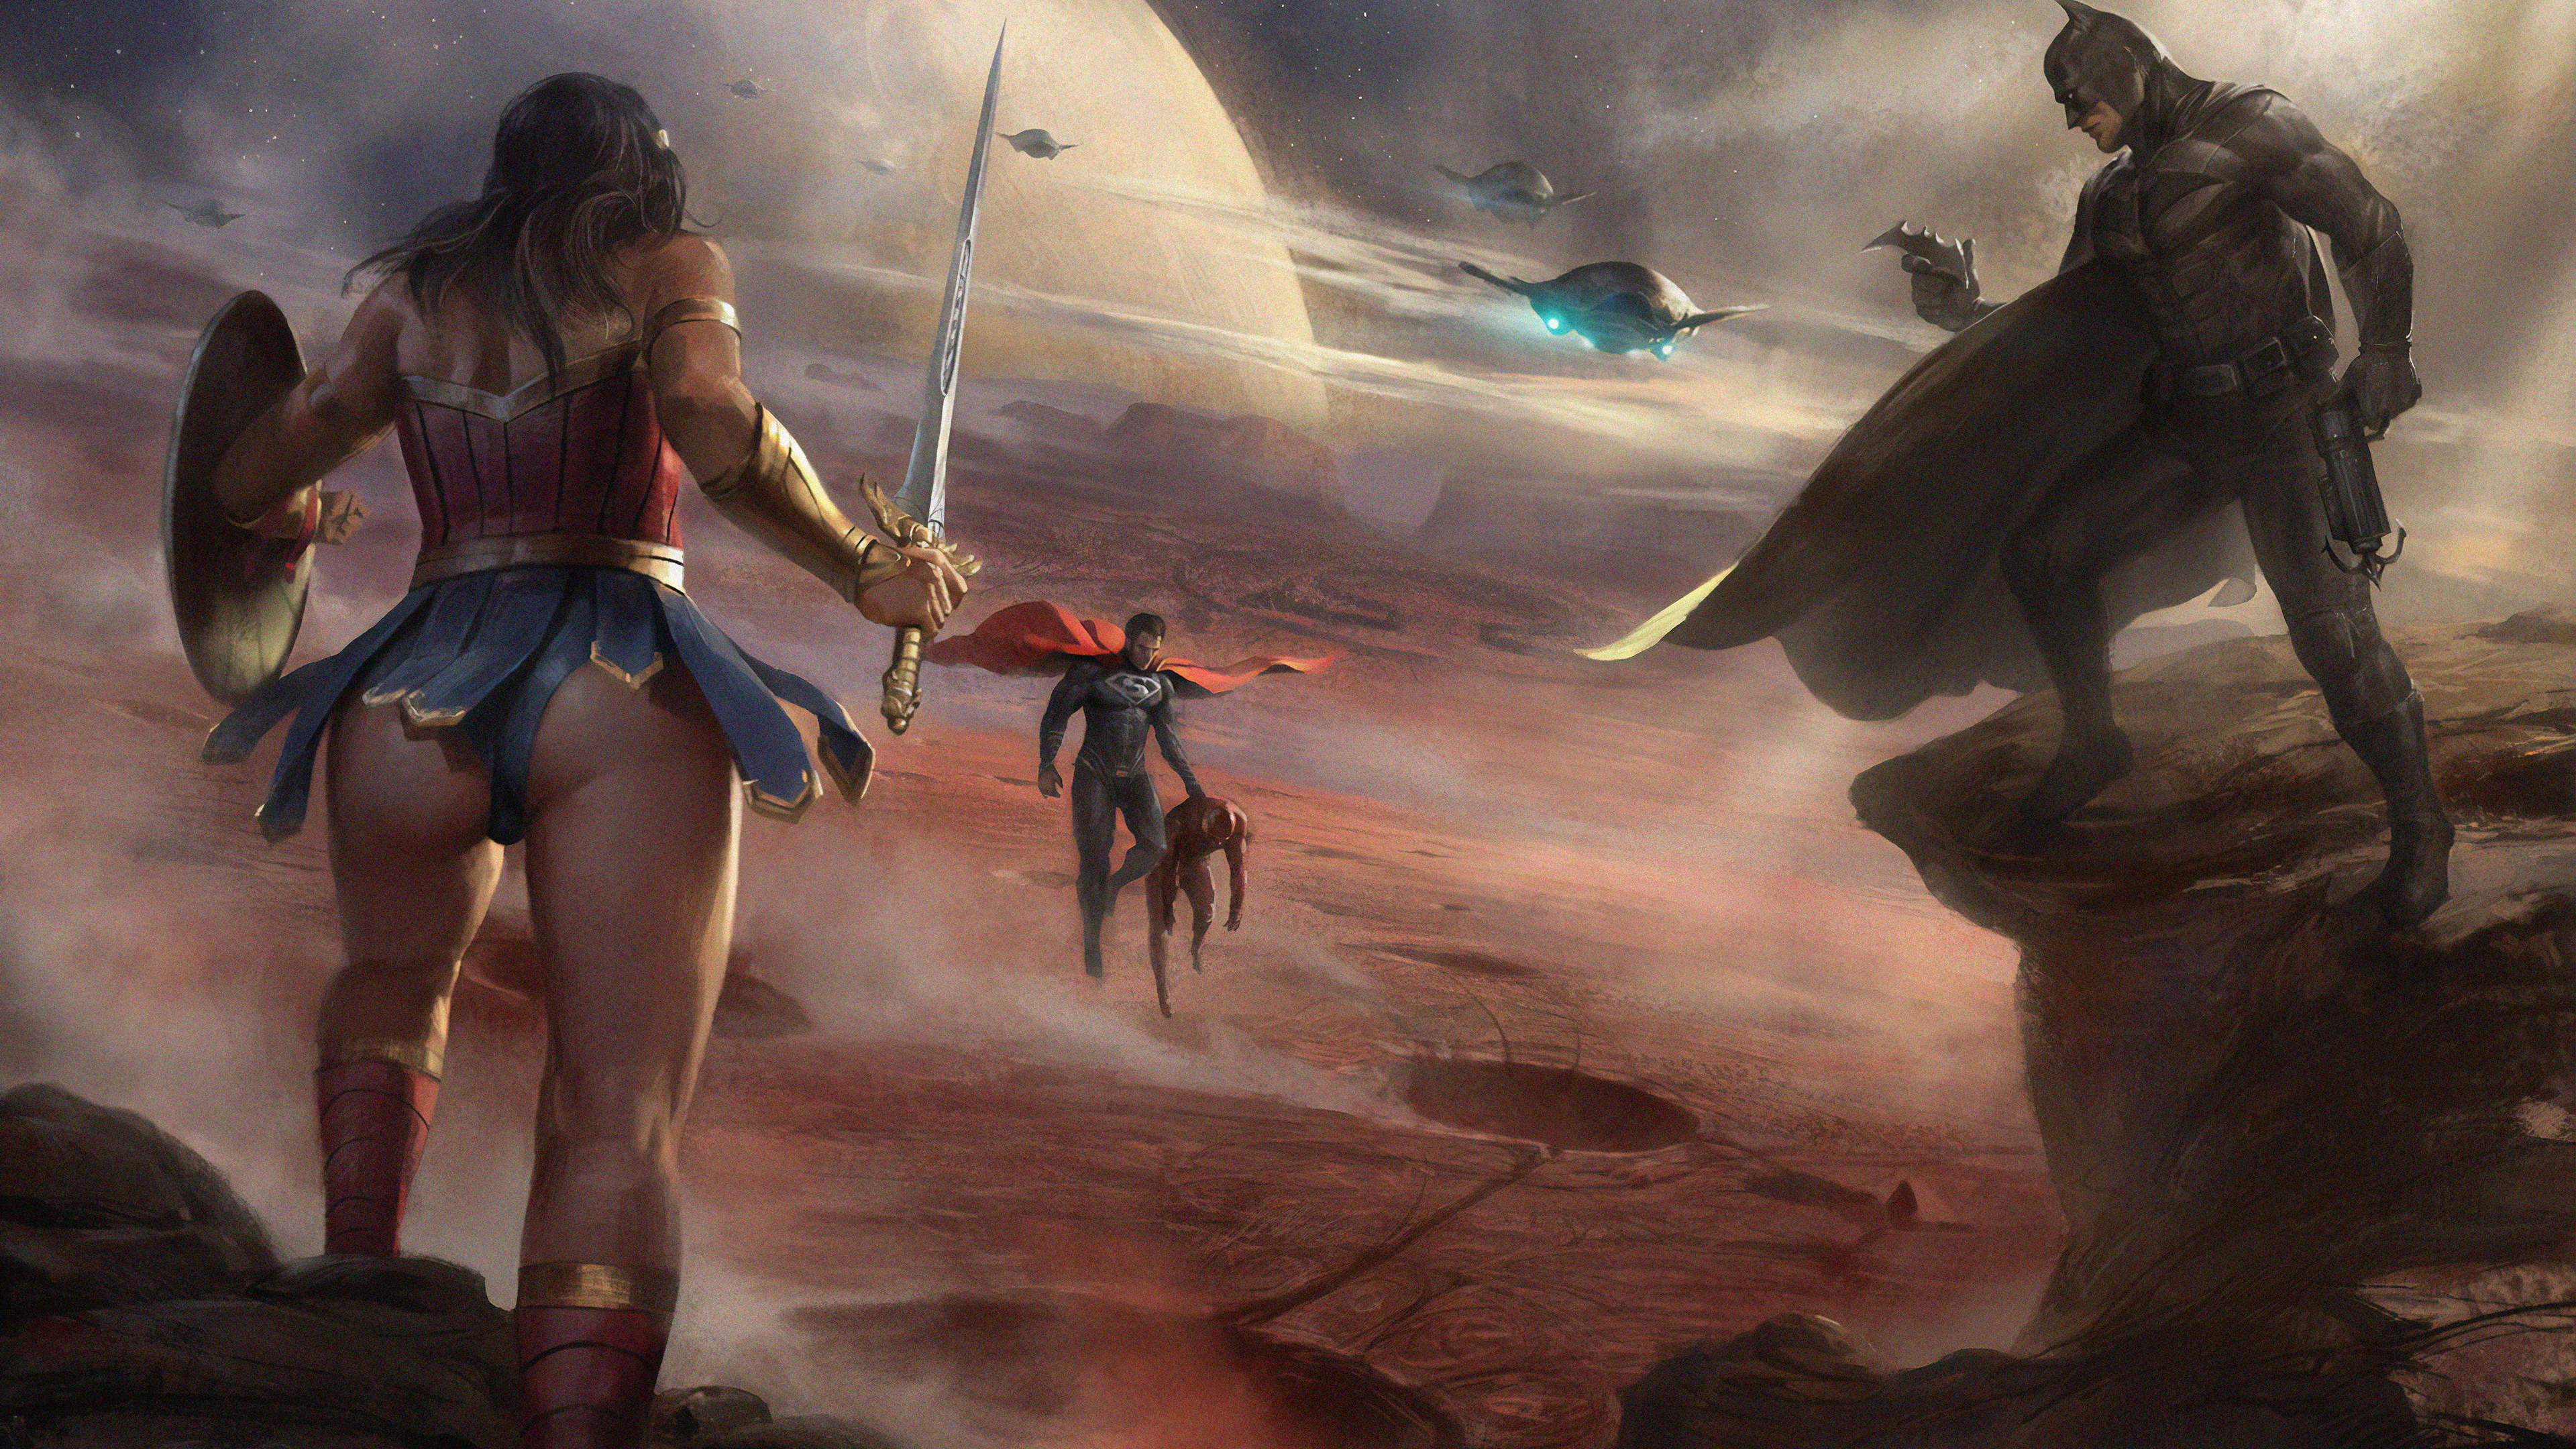 diana and bruce saving flash from superman 1563219808 - Diana And Bruce Saving Flash From Superman - wonder woman wallpapers, superman wallpapers, superheroes wallpapers, hd-wallpapers, digital art wallpapers, batman wallpapers, 4k-wallpapers